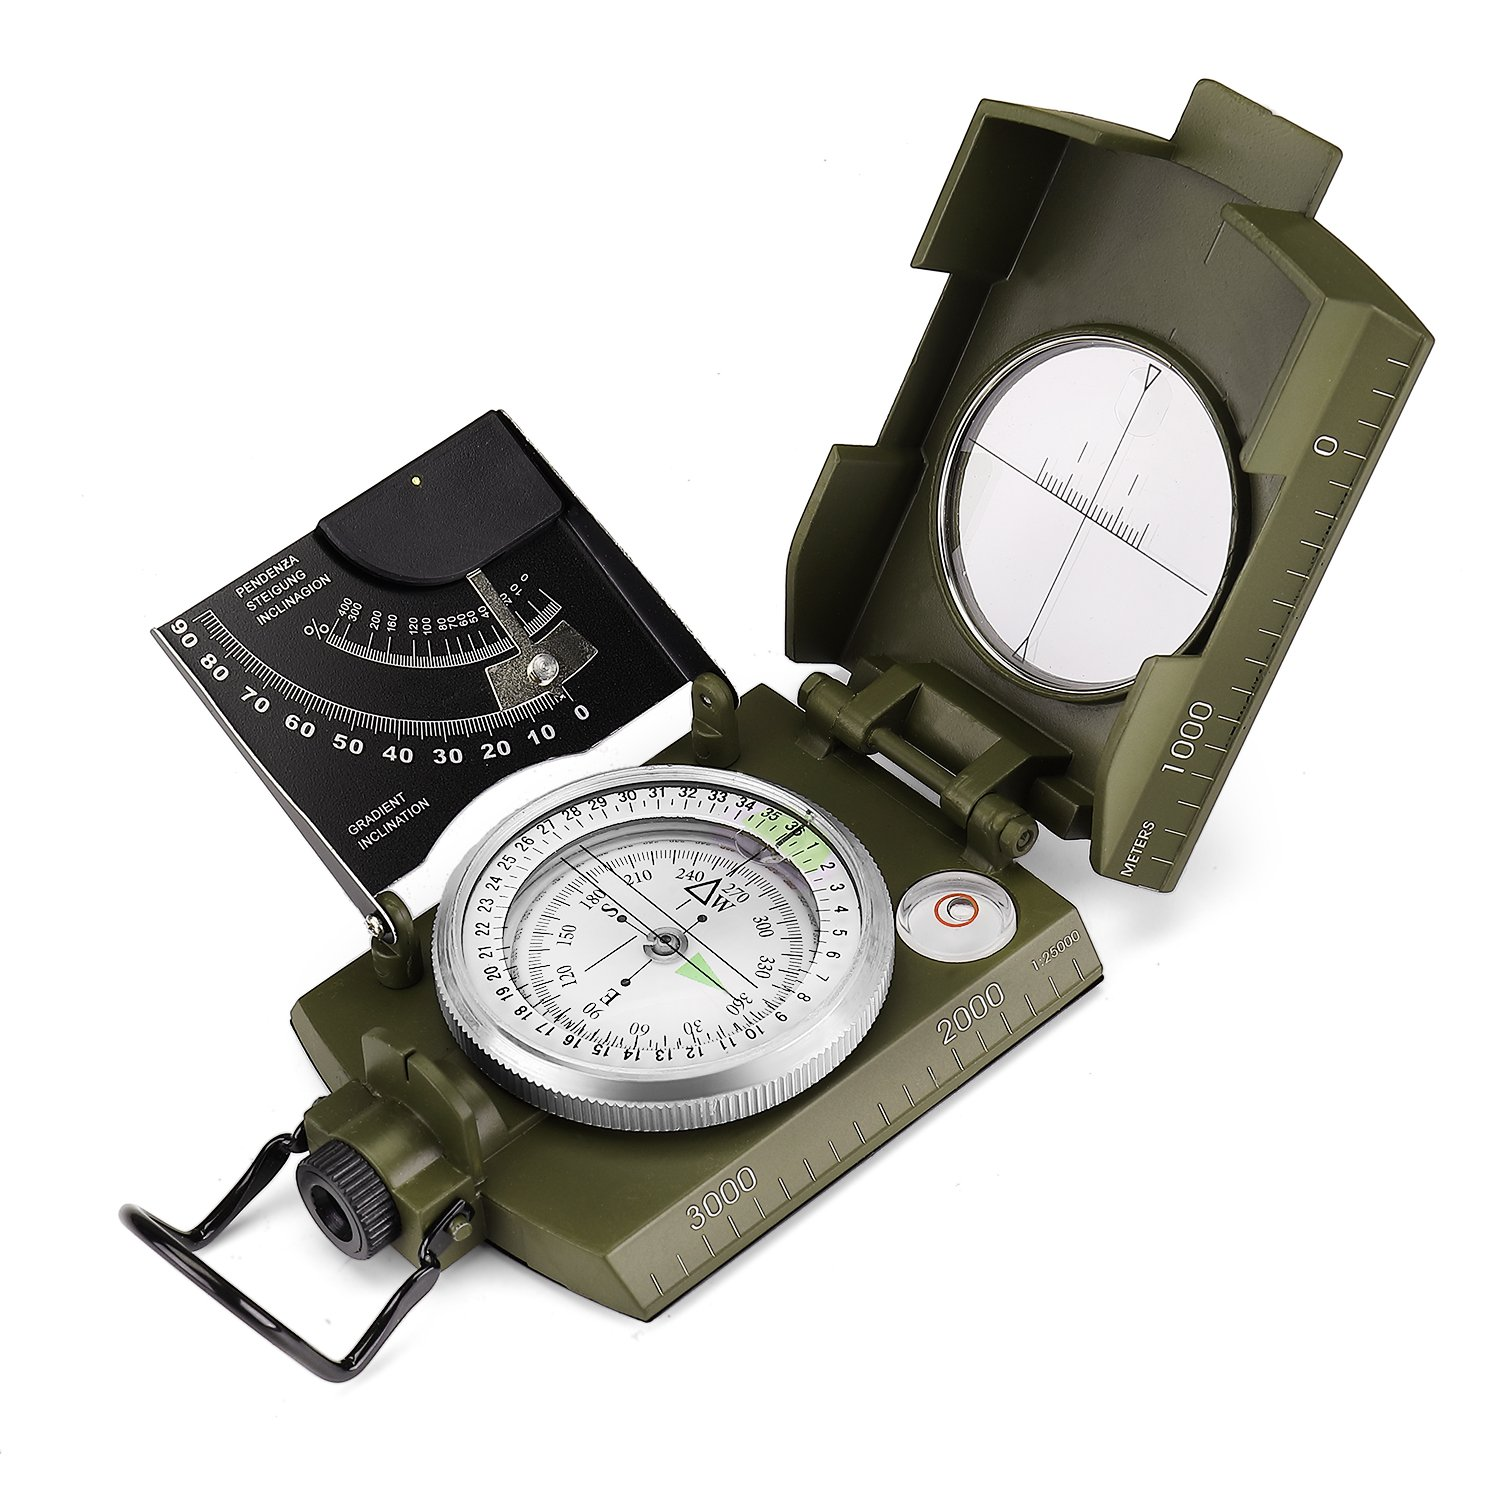 Flexzion Professional Multifunction Military Army Metal Sighting Compass Waterproof - Clinometer with Carrying Bag for Outdoor Navigation Camping Climbing Hunting Hiking Geology Adventure Travel Green